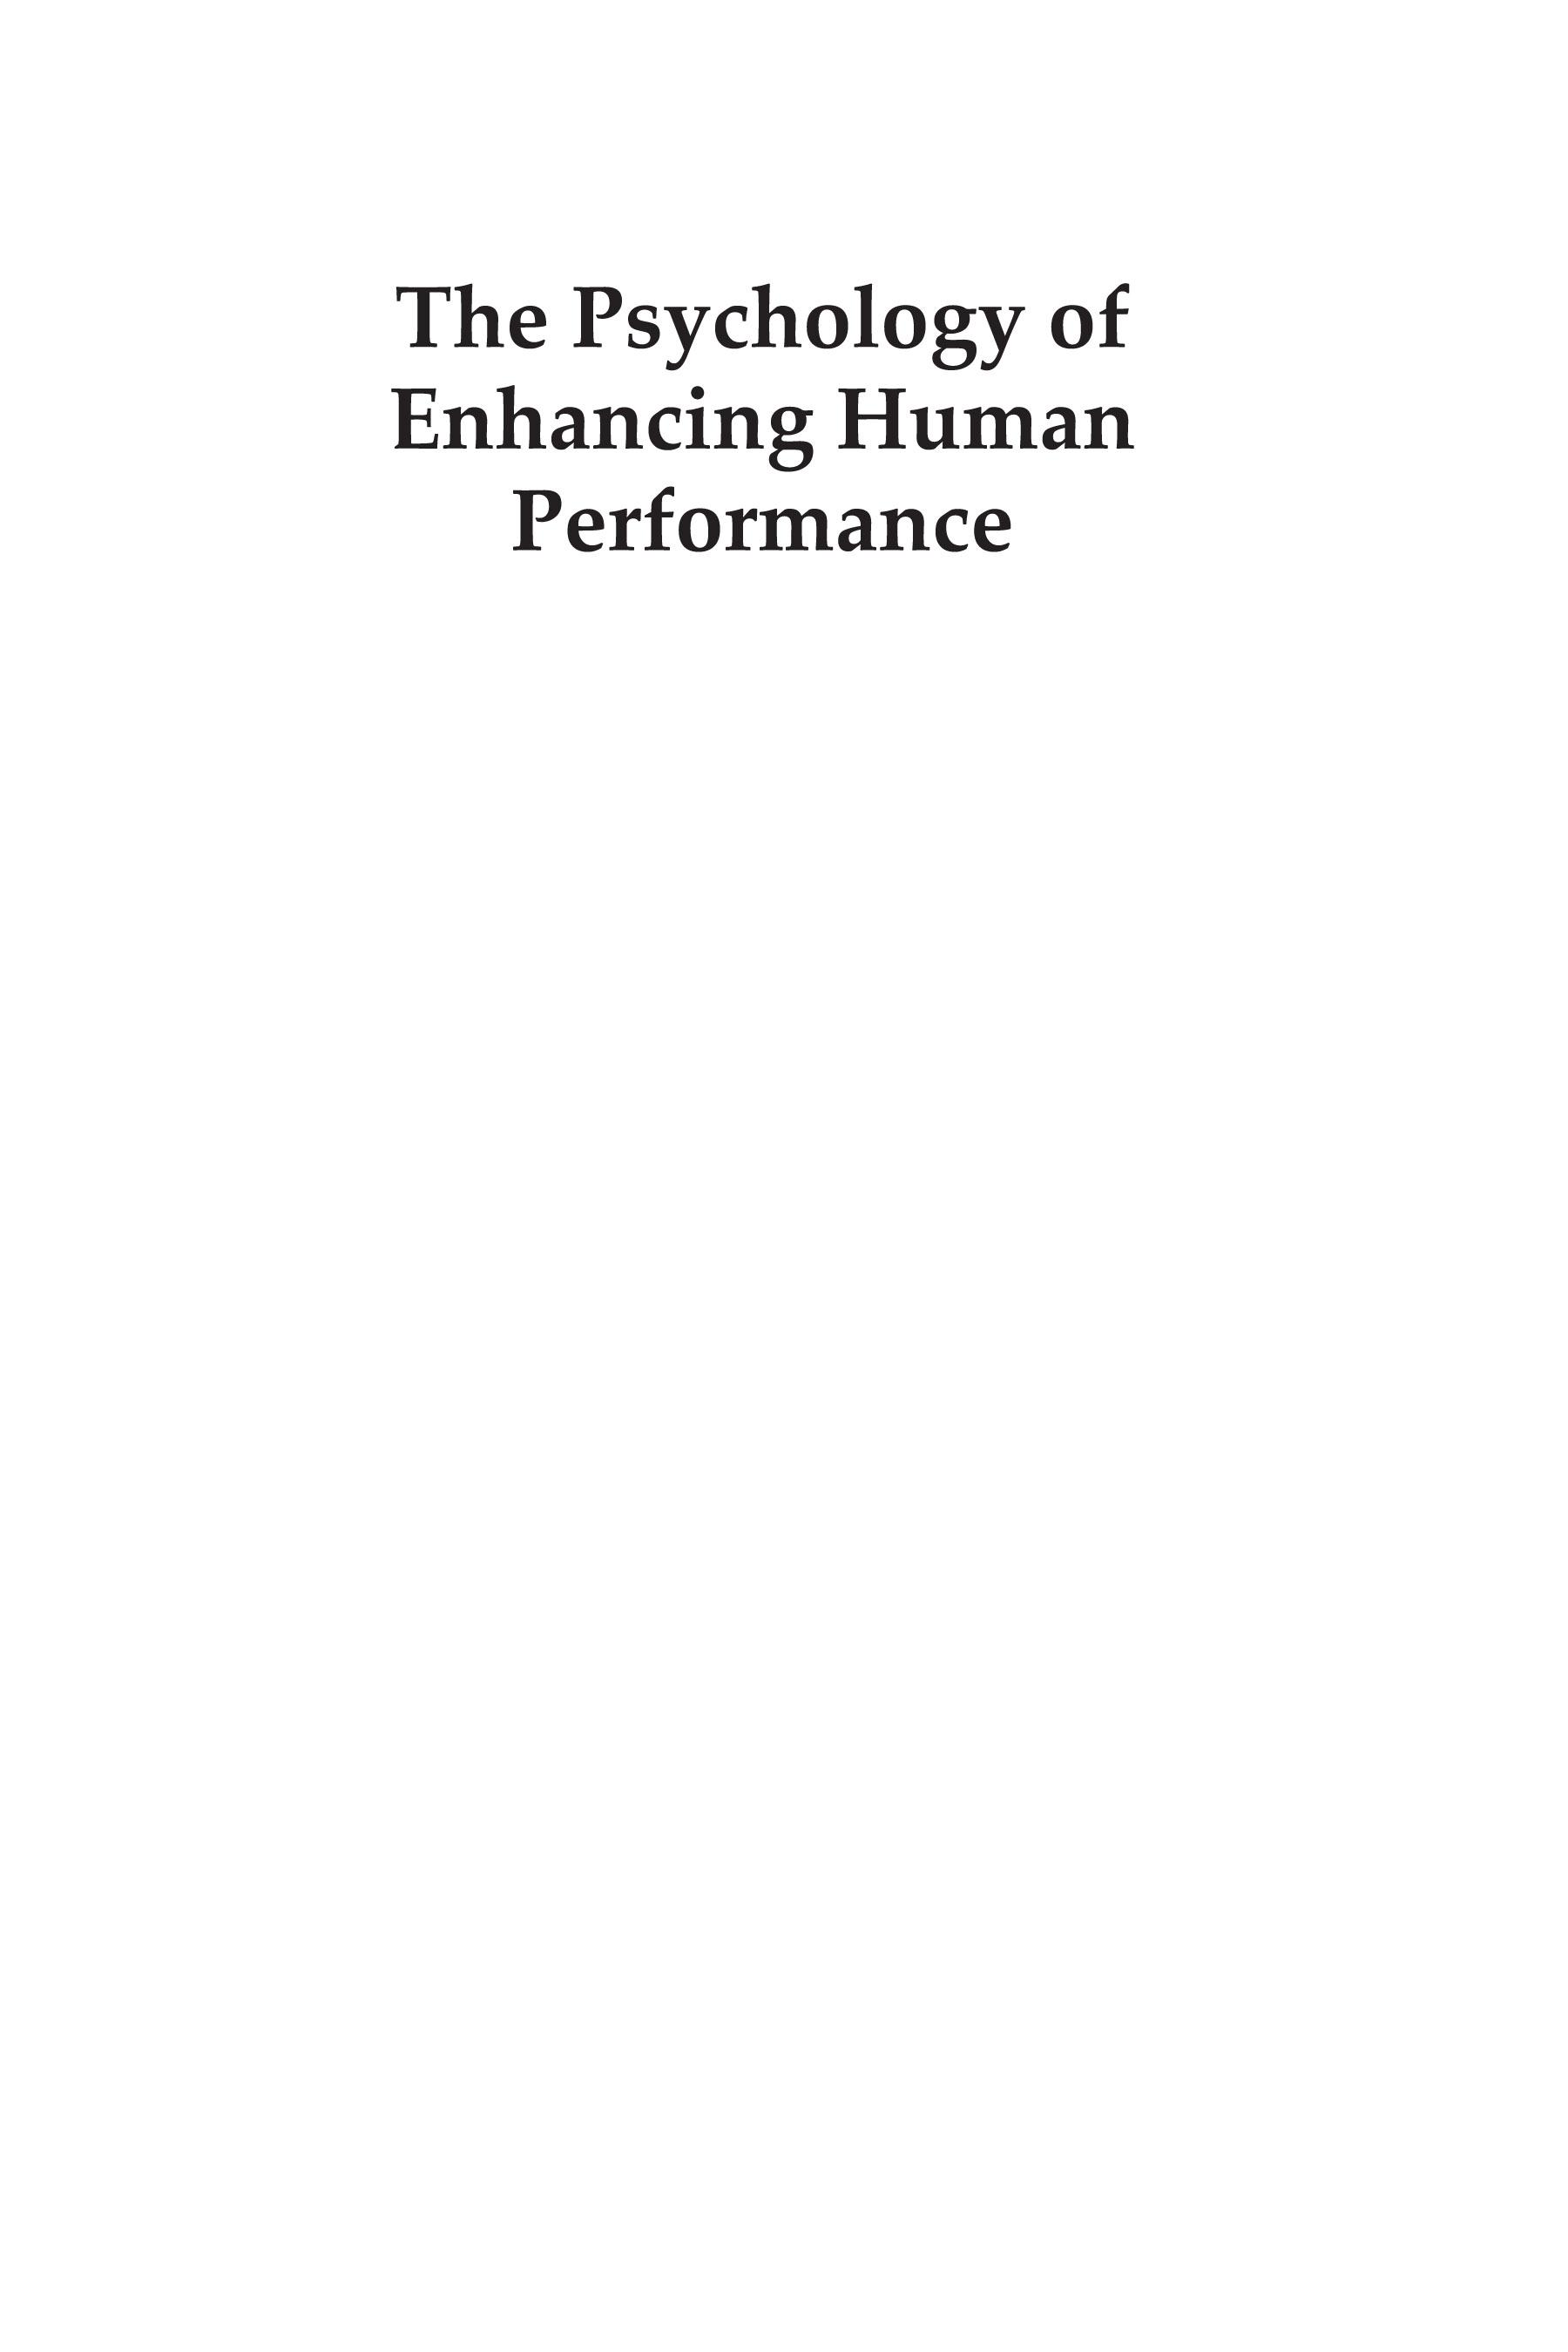 Psychology of Enhancing Human Performance, The: The Mindfulness-Acceptance-Commitment Approach